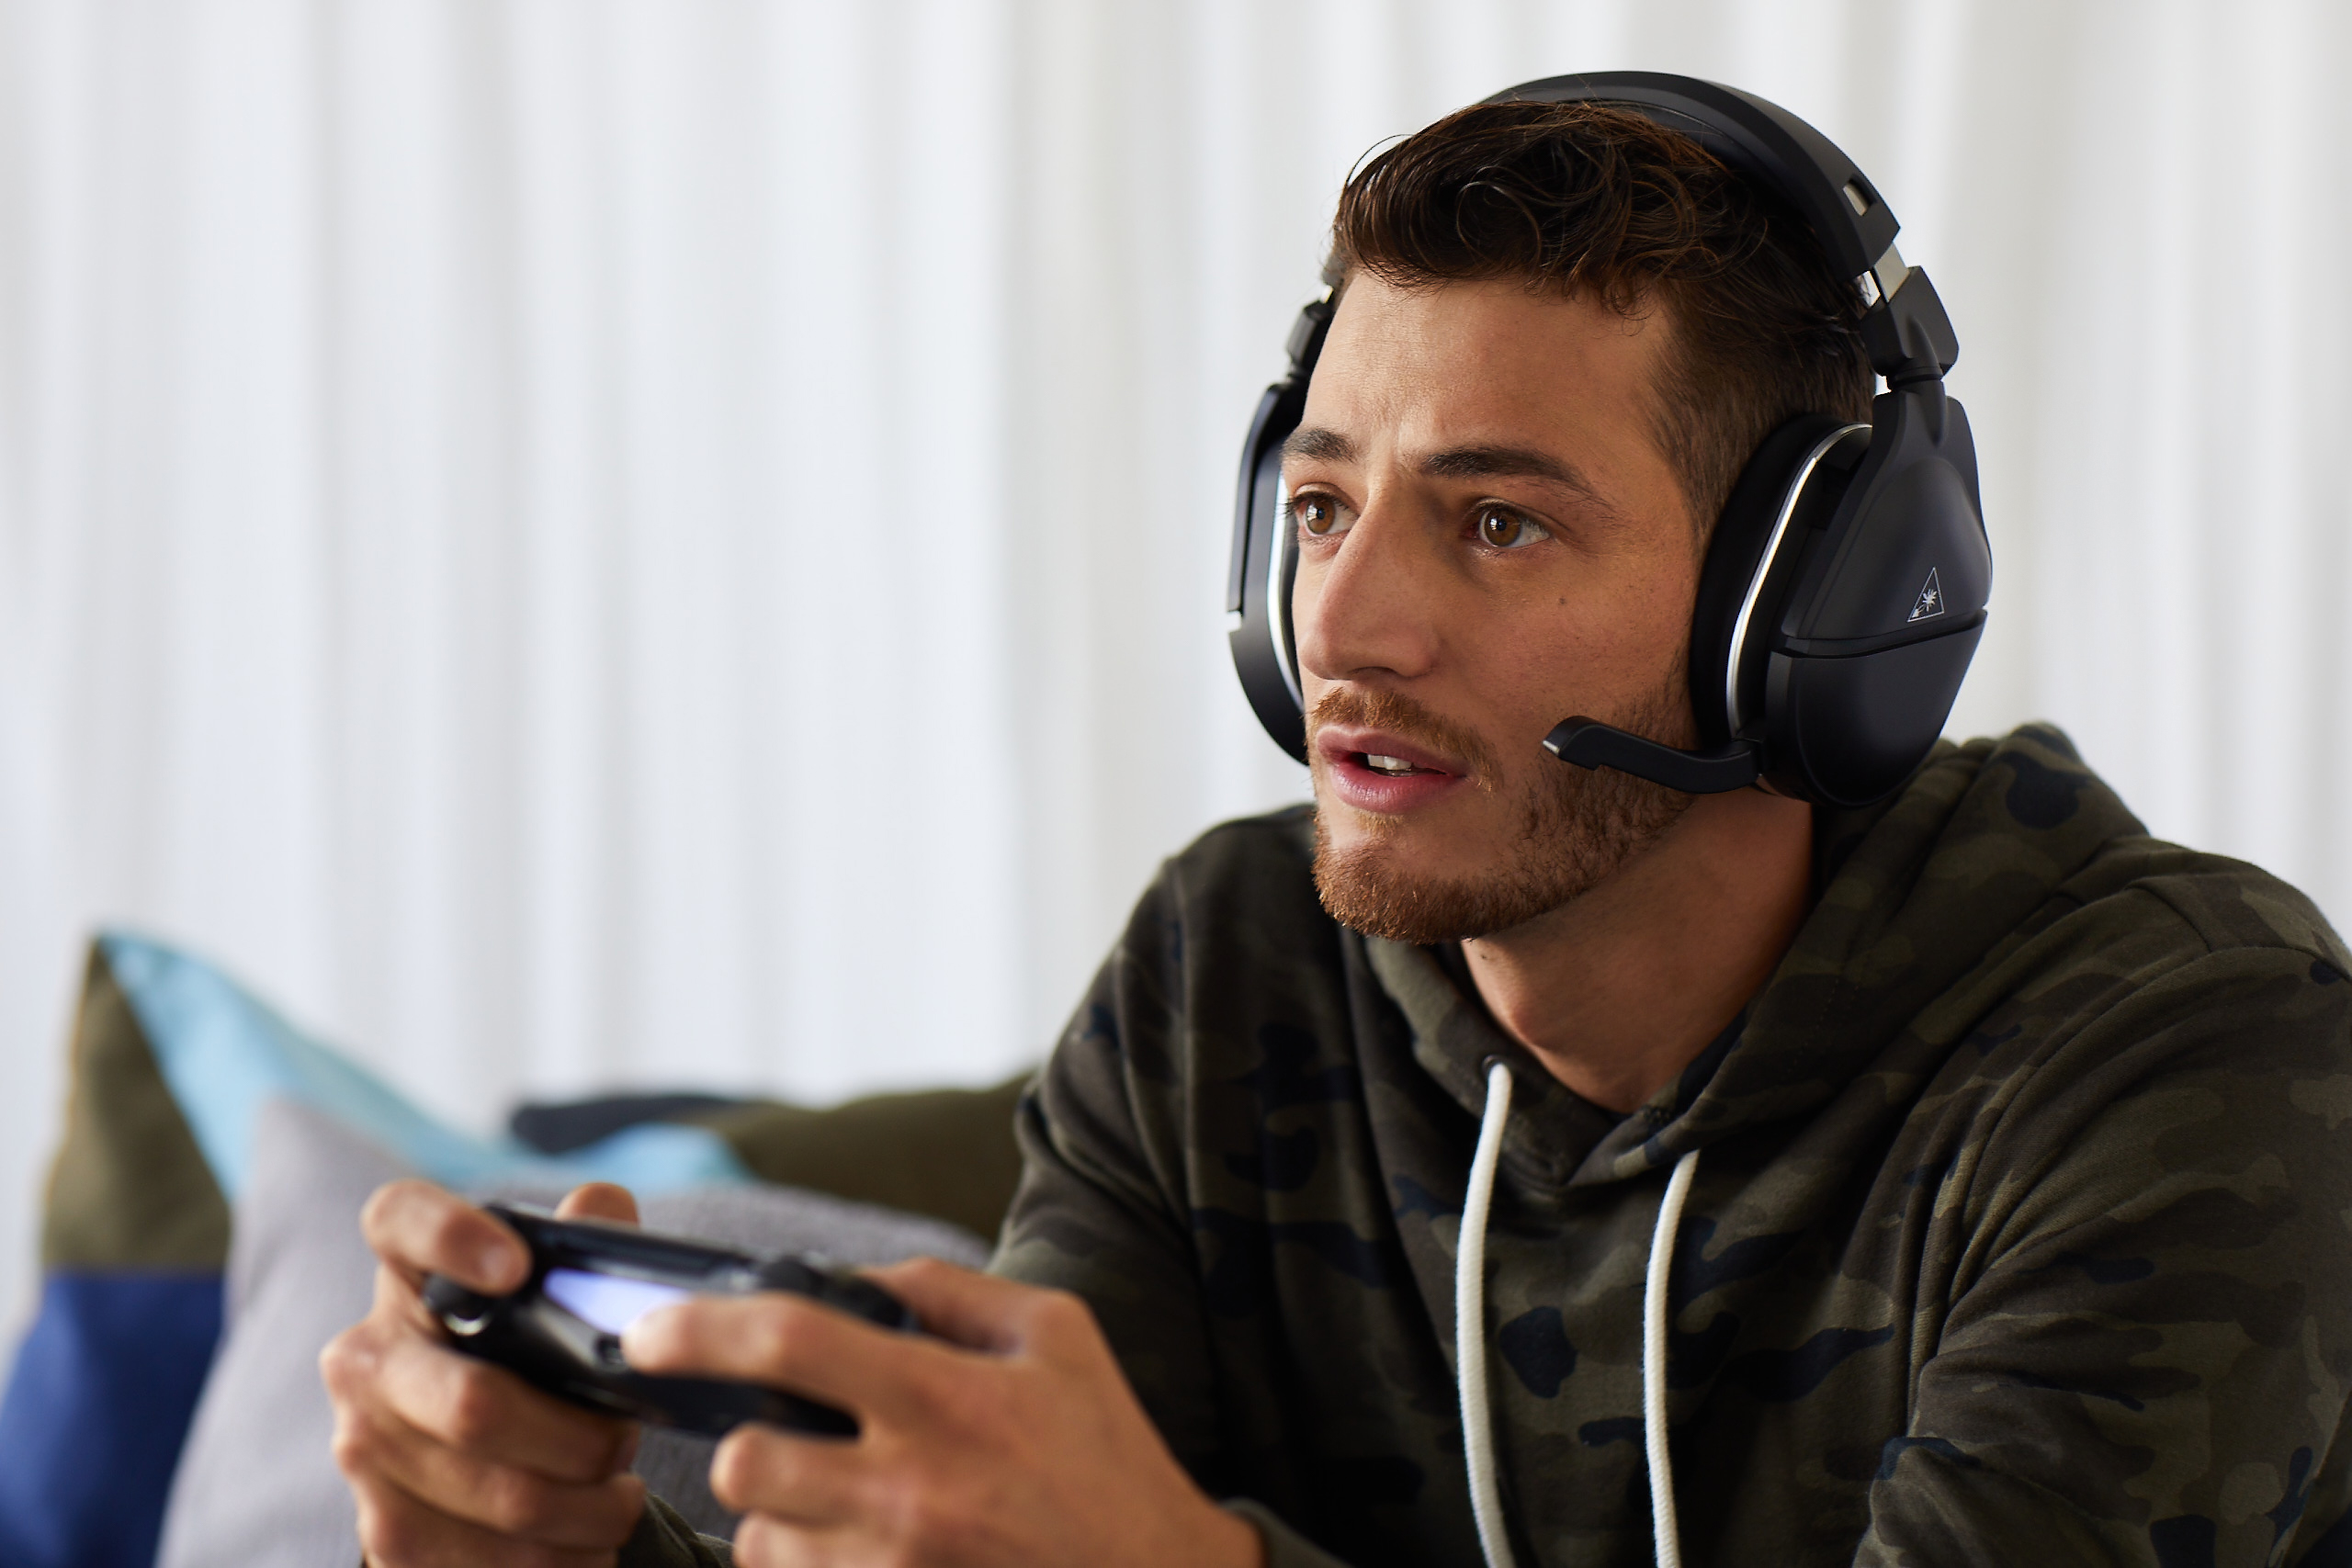 Turtle Beach Stealth 700 playstation headset review